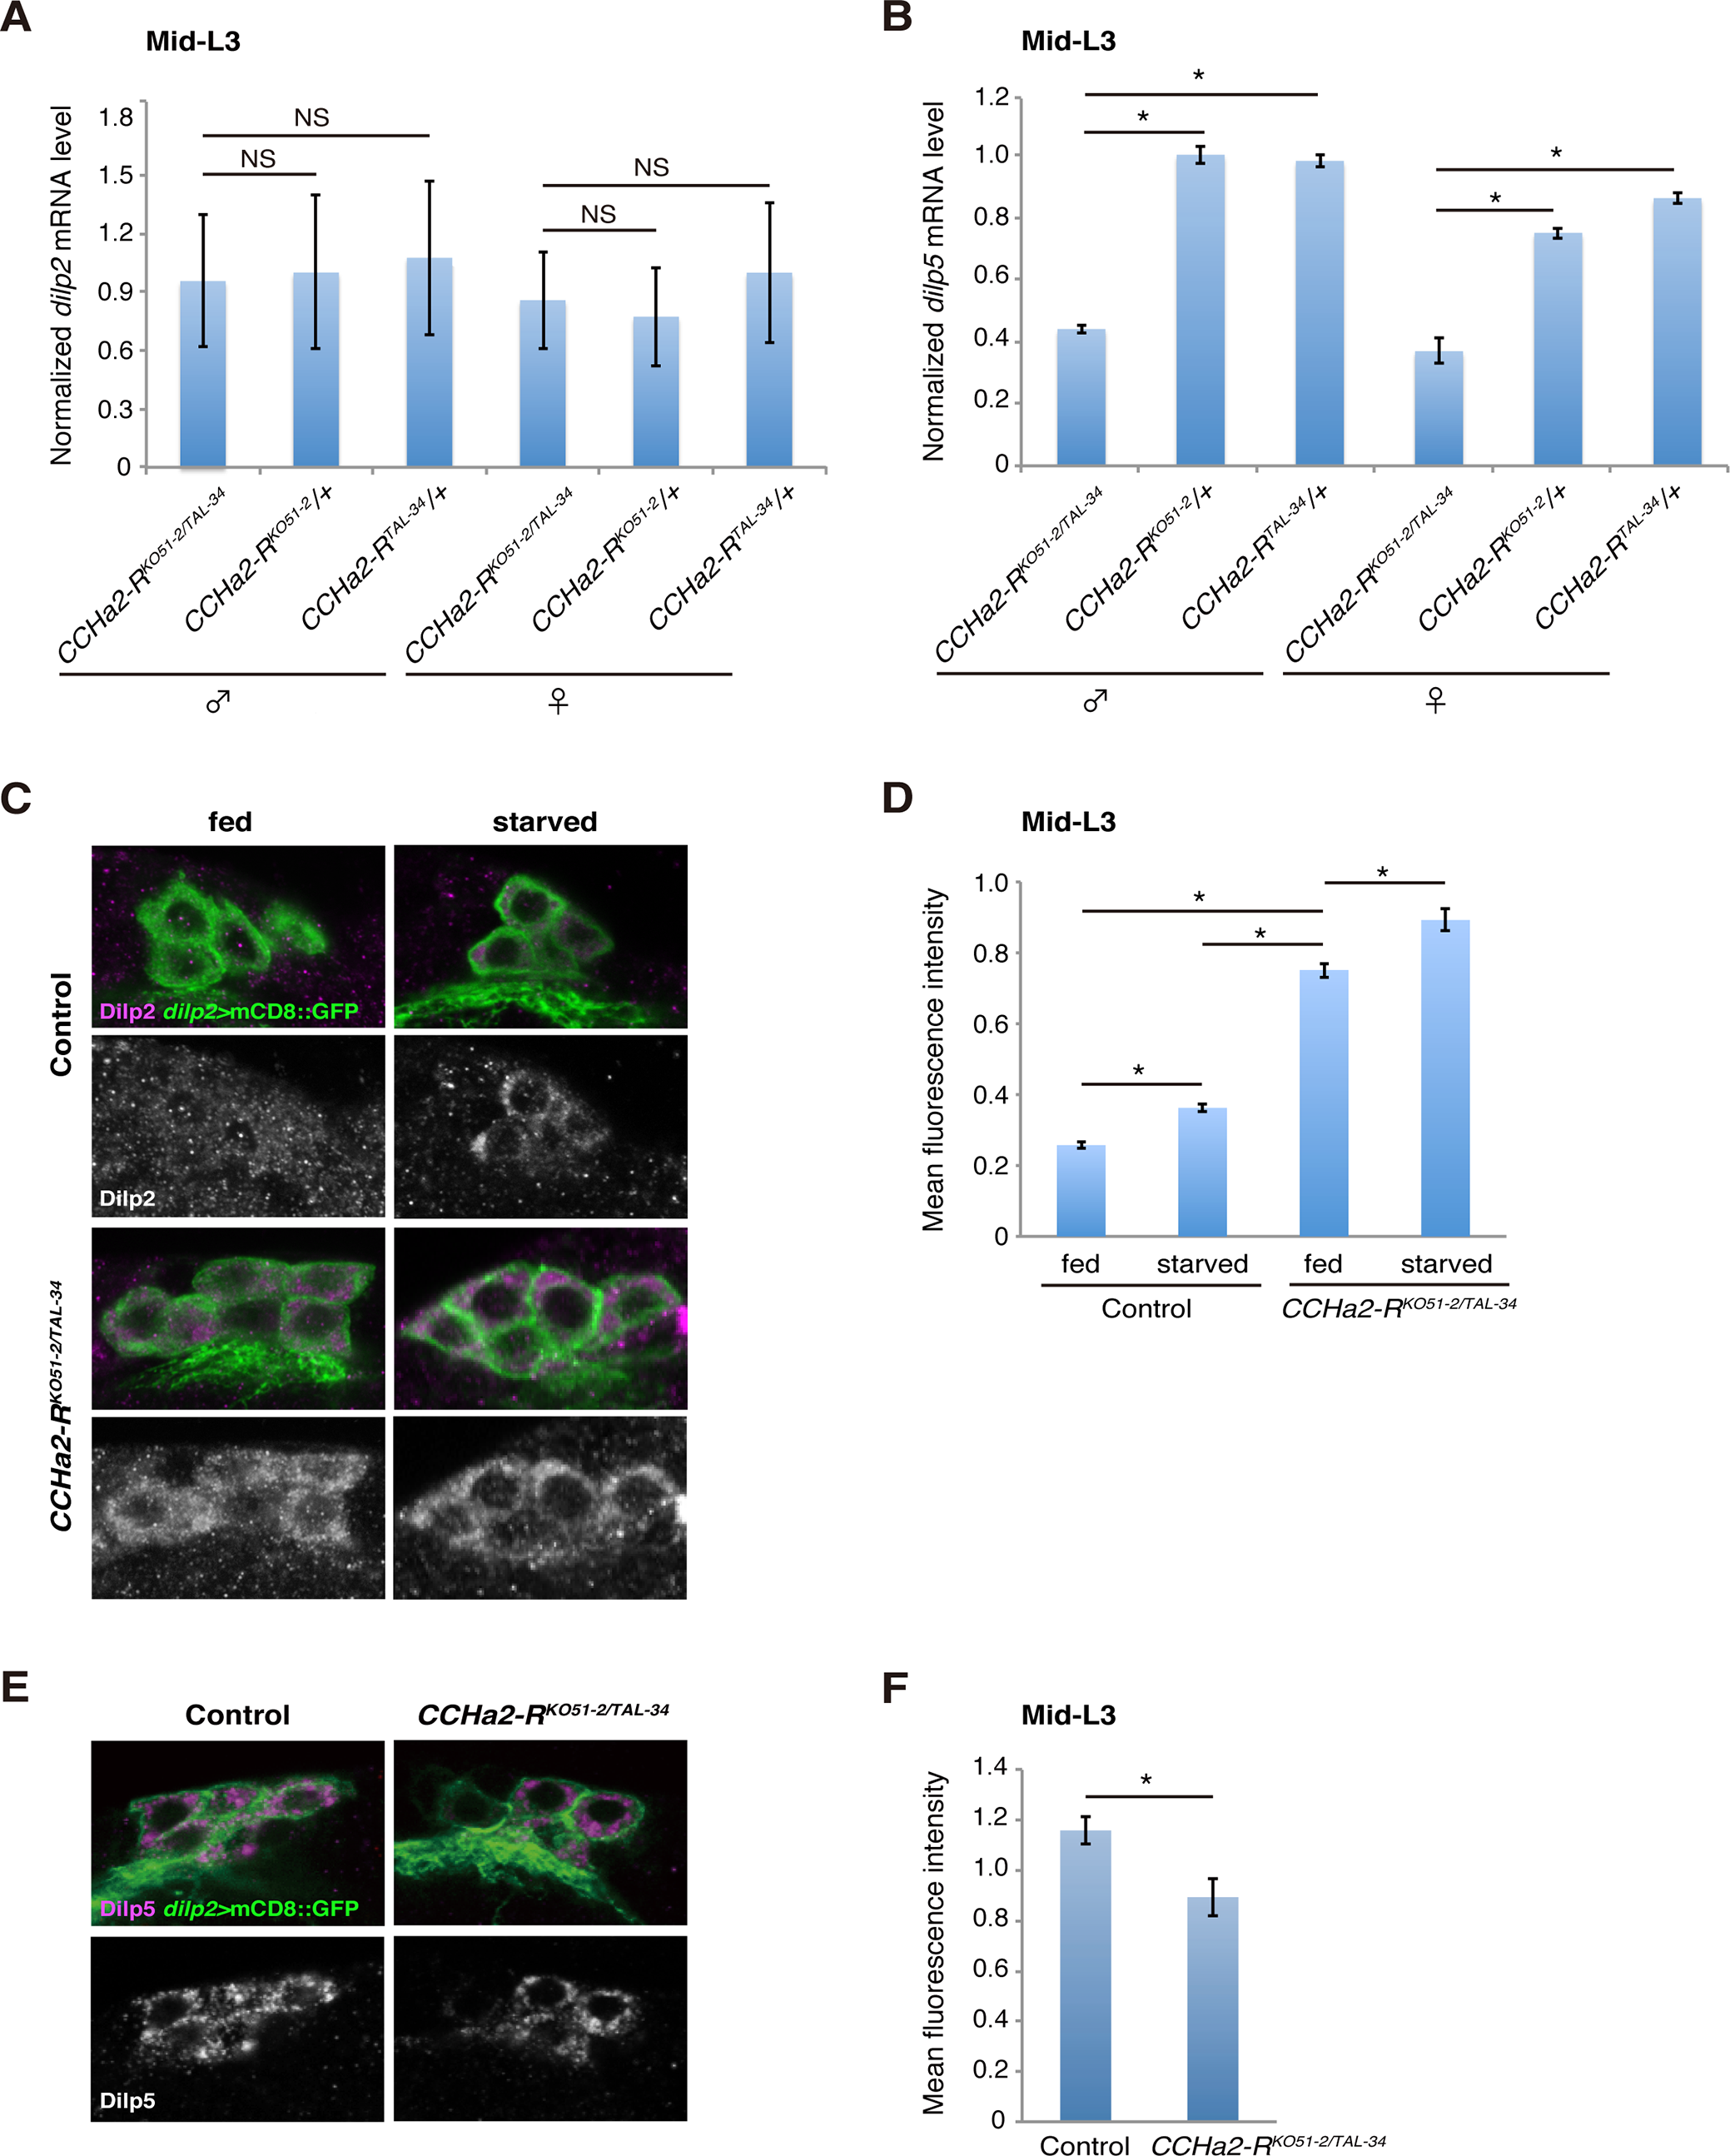 <i>CCHa2-R</i> mutations affect the production of Dilp2 and Dilp5 in IPCs.